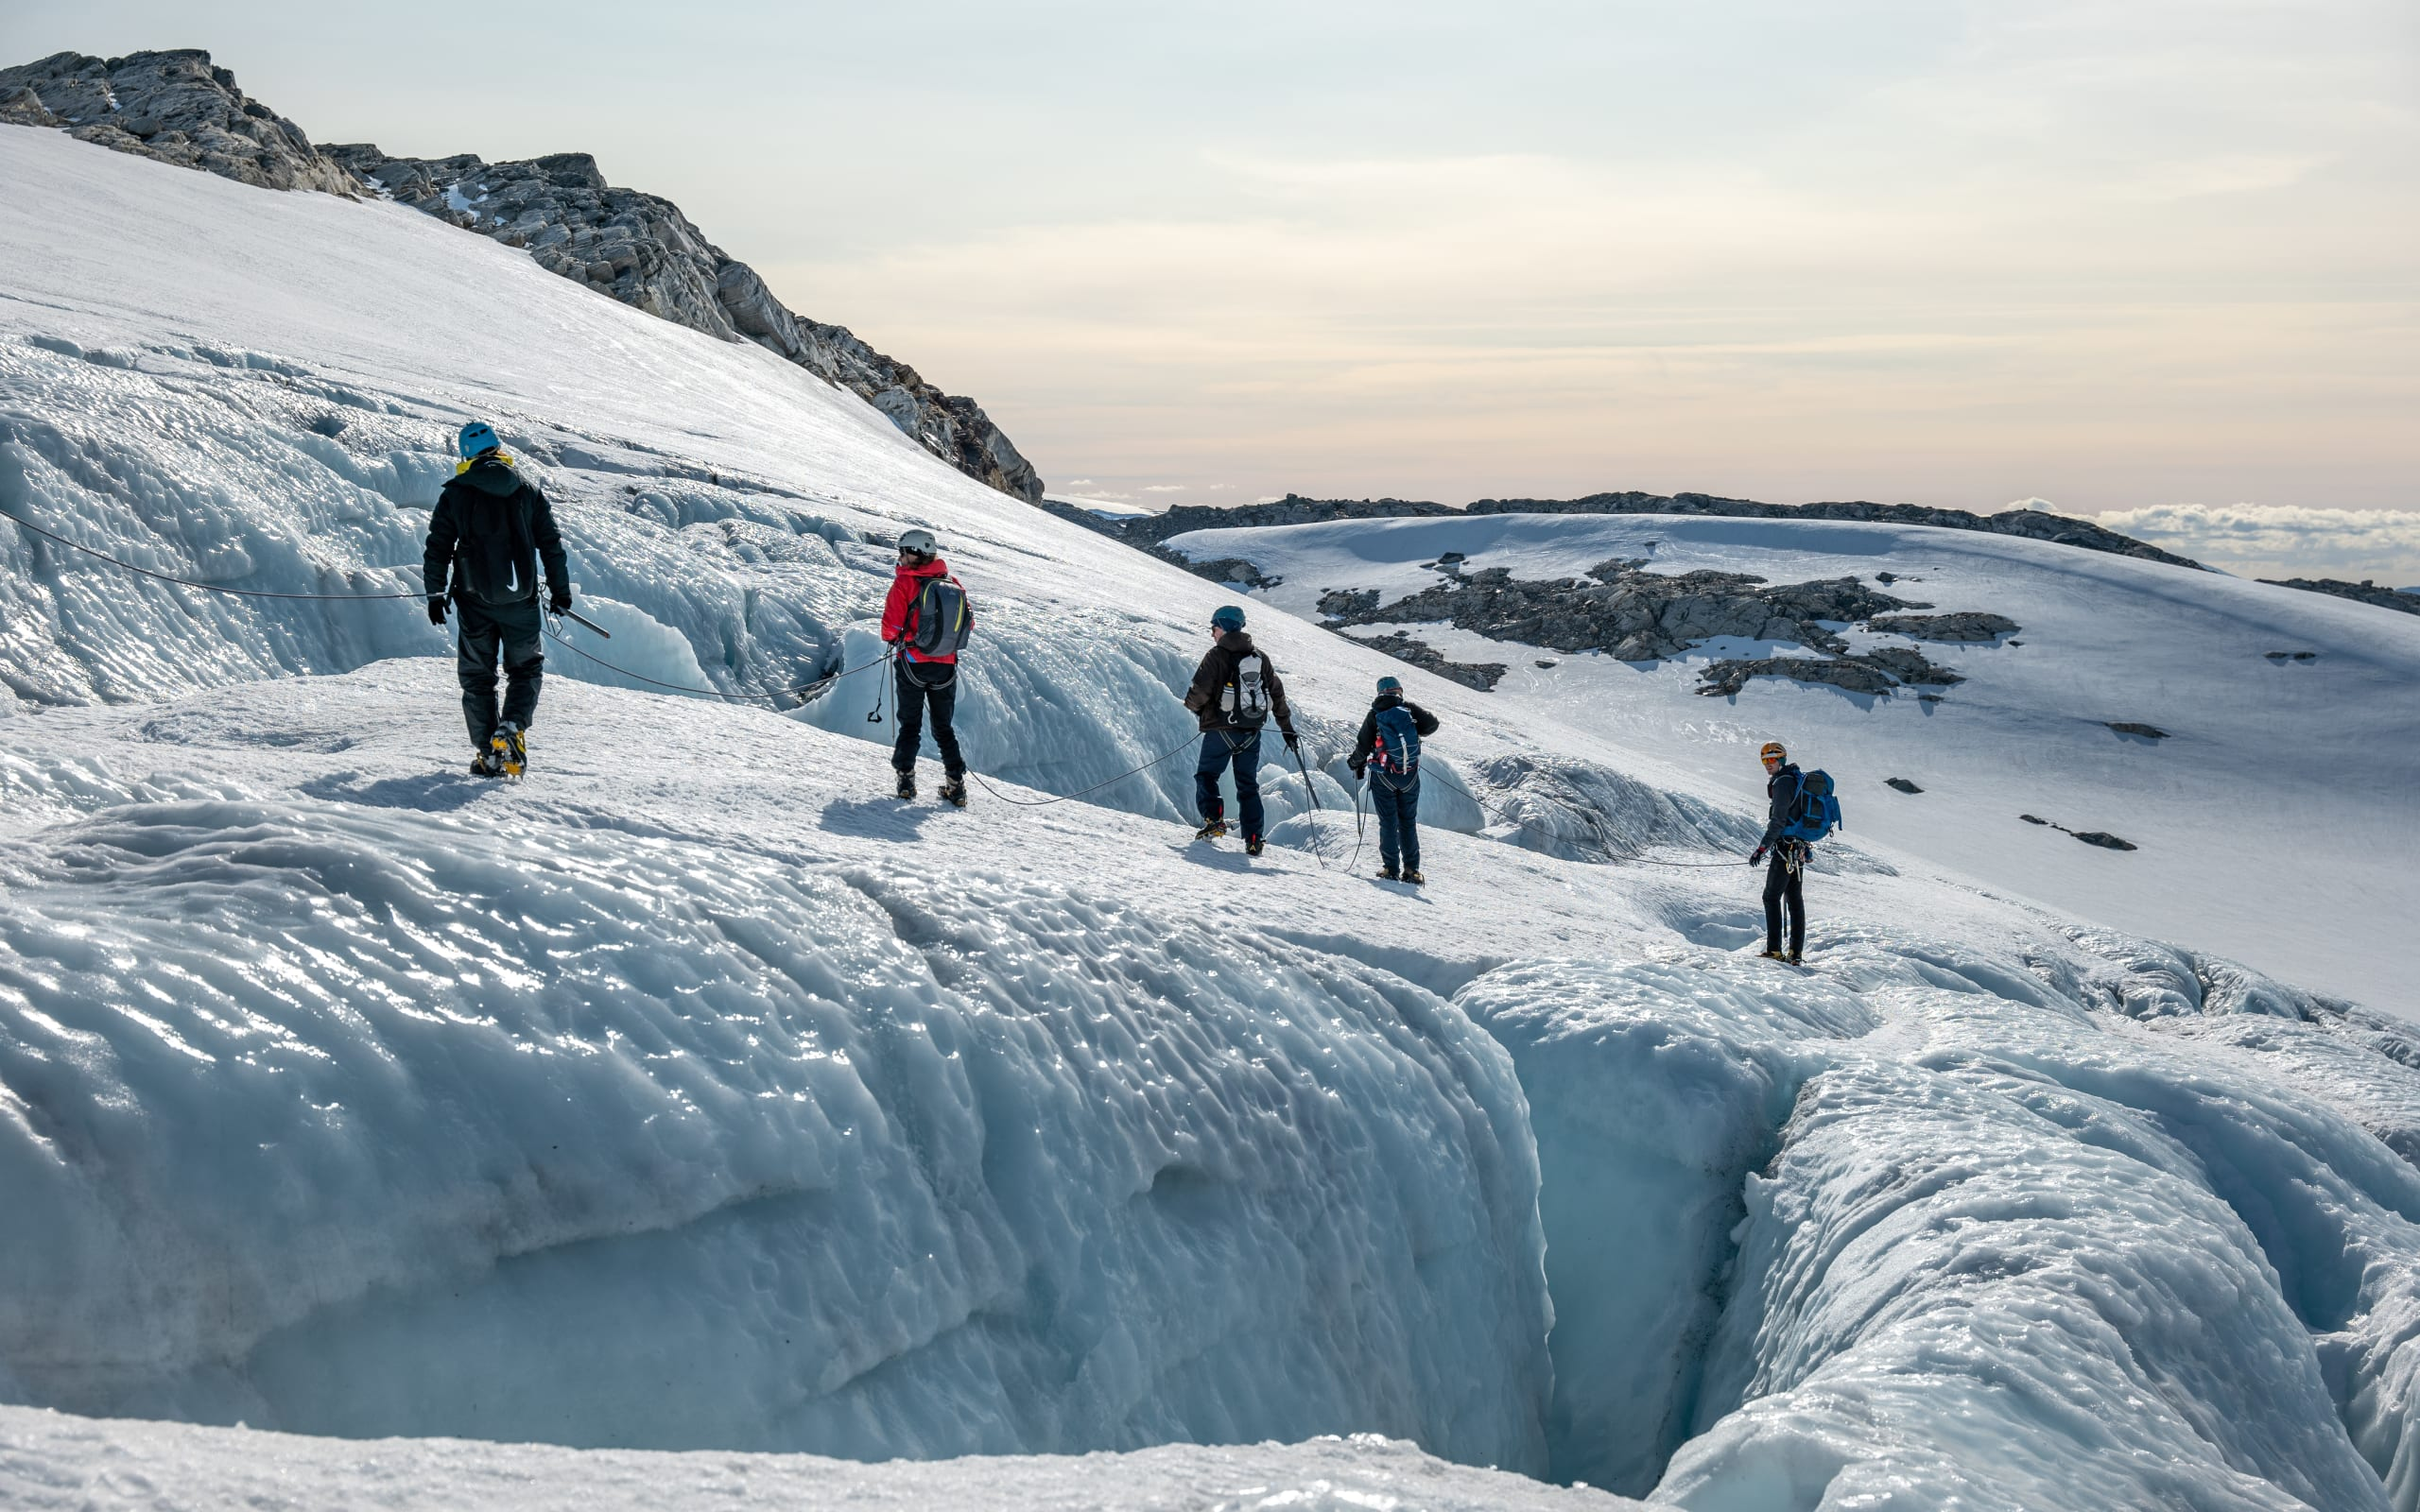 Hiking on top of a big crevasse